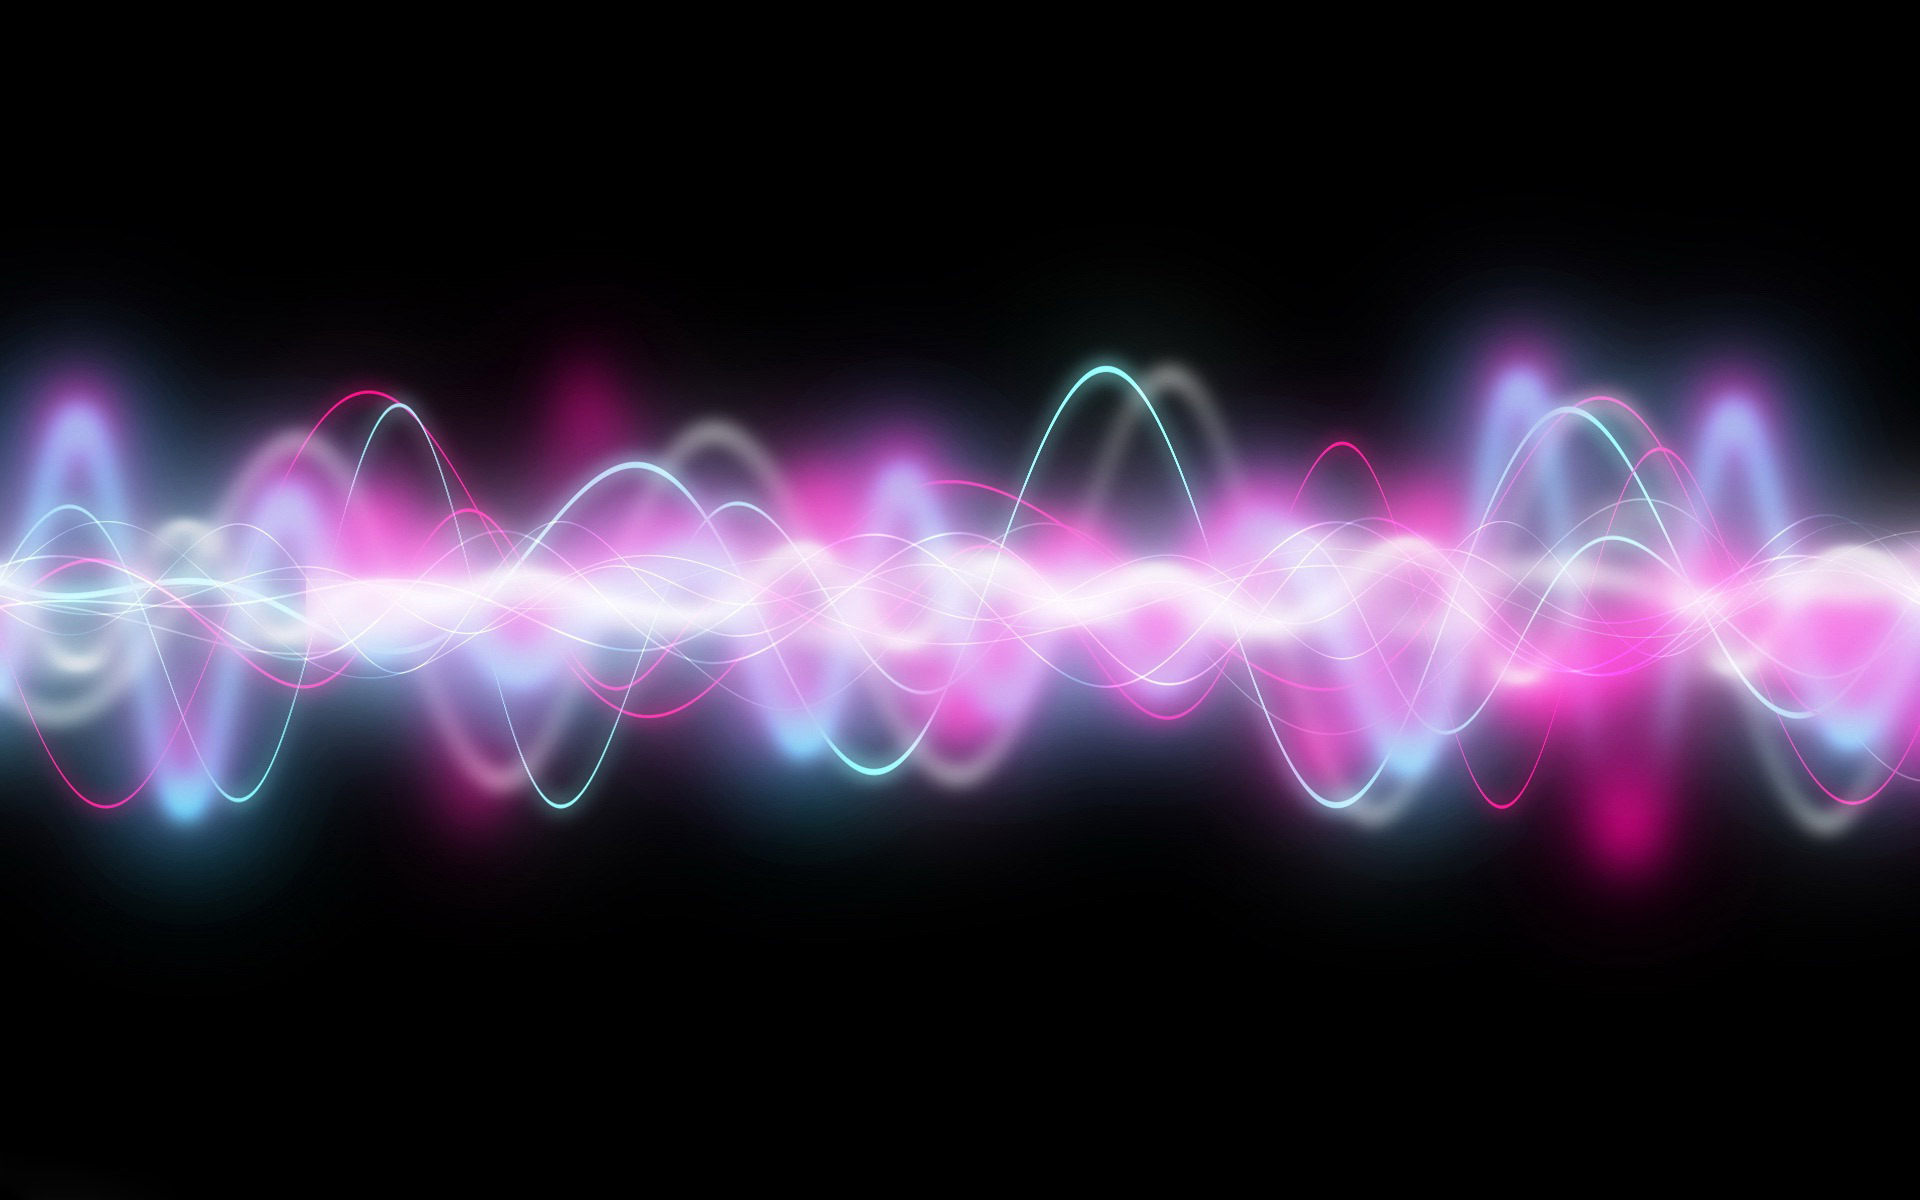 Sound Waves Wallpaper Images amp Pictures   Becuo 1920x1200